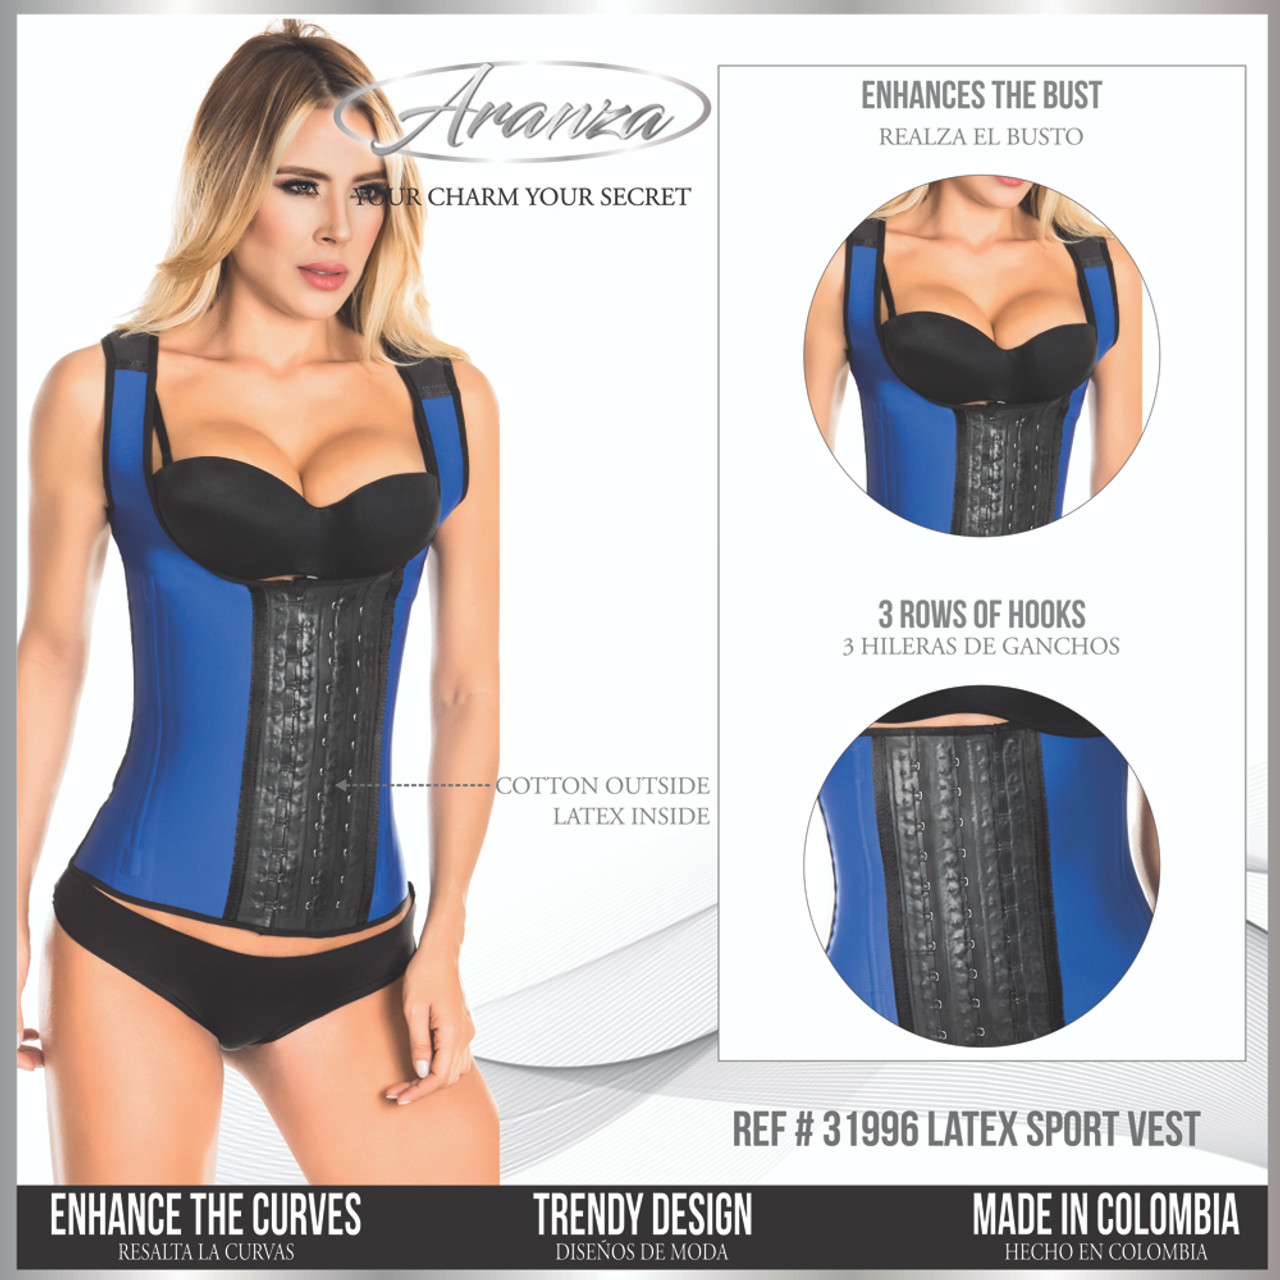 ee6c5486d4205 ... Best Latex Waist Cinchers you will ever find. Our women s shapewear  slim your waist